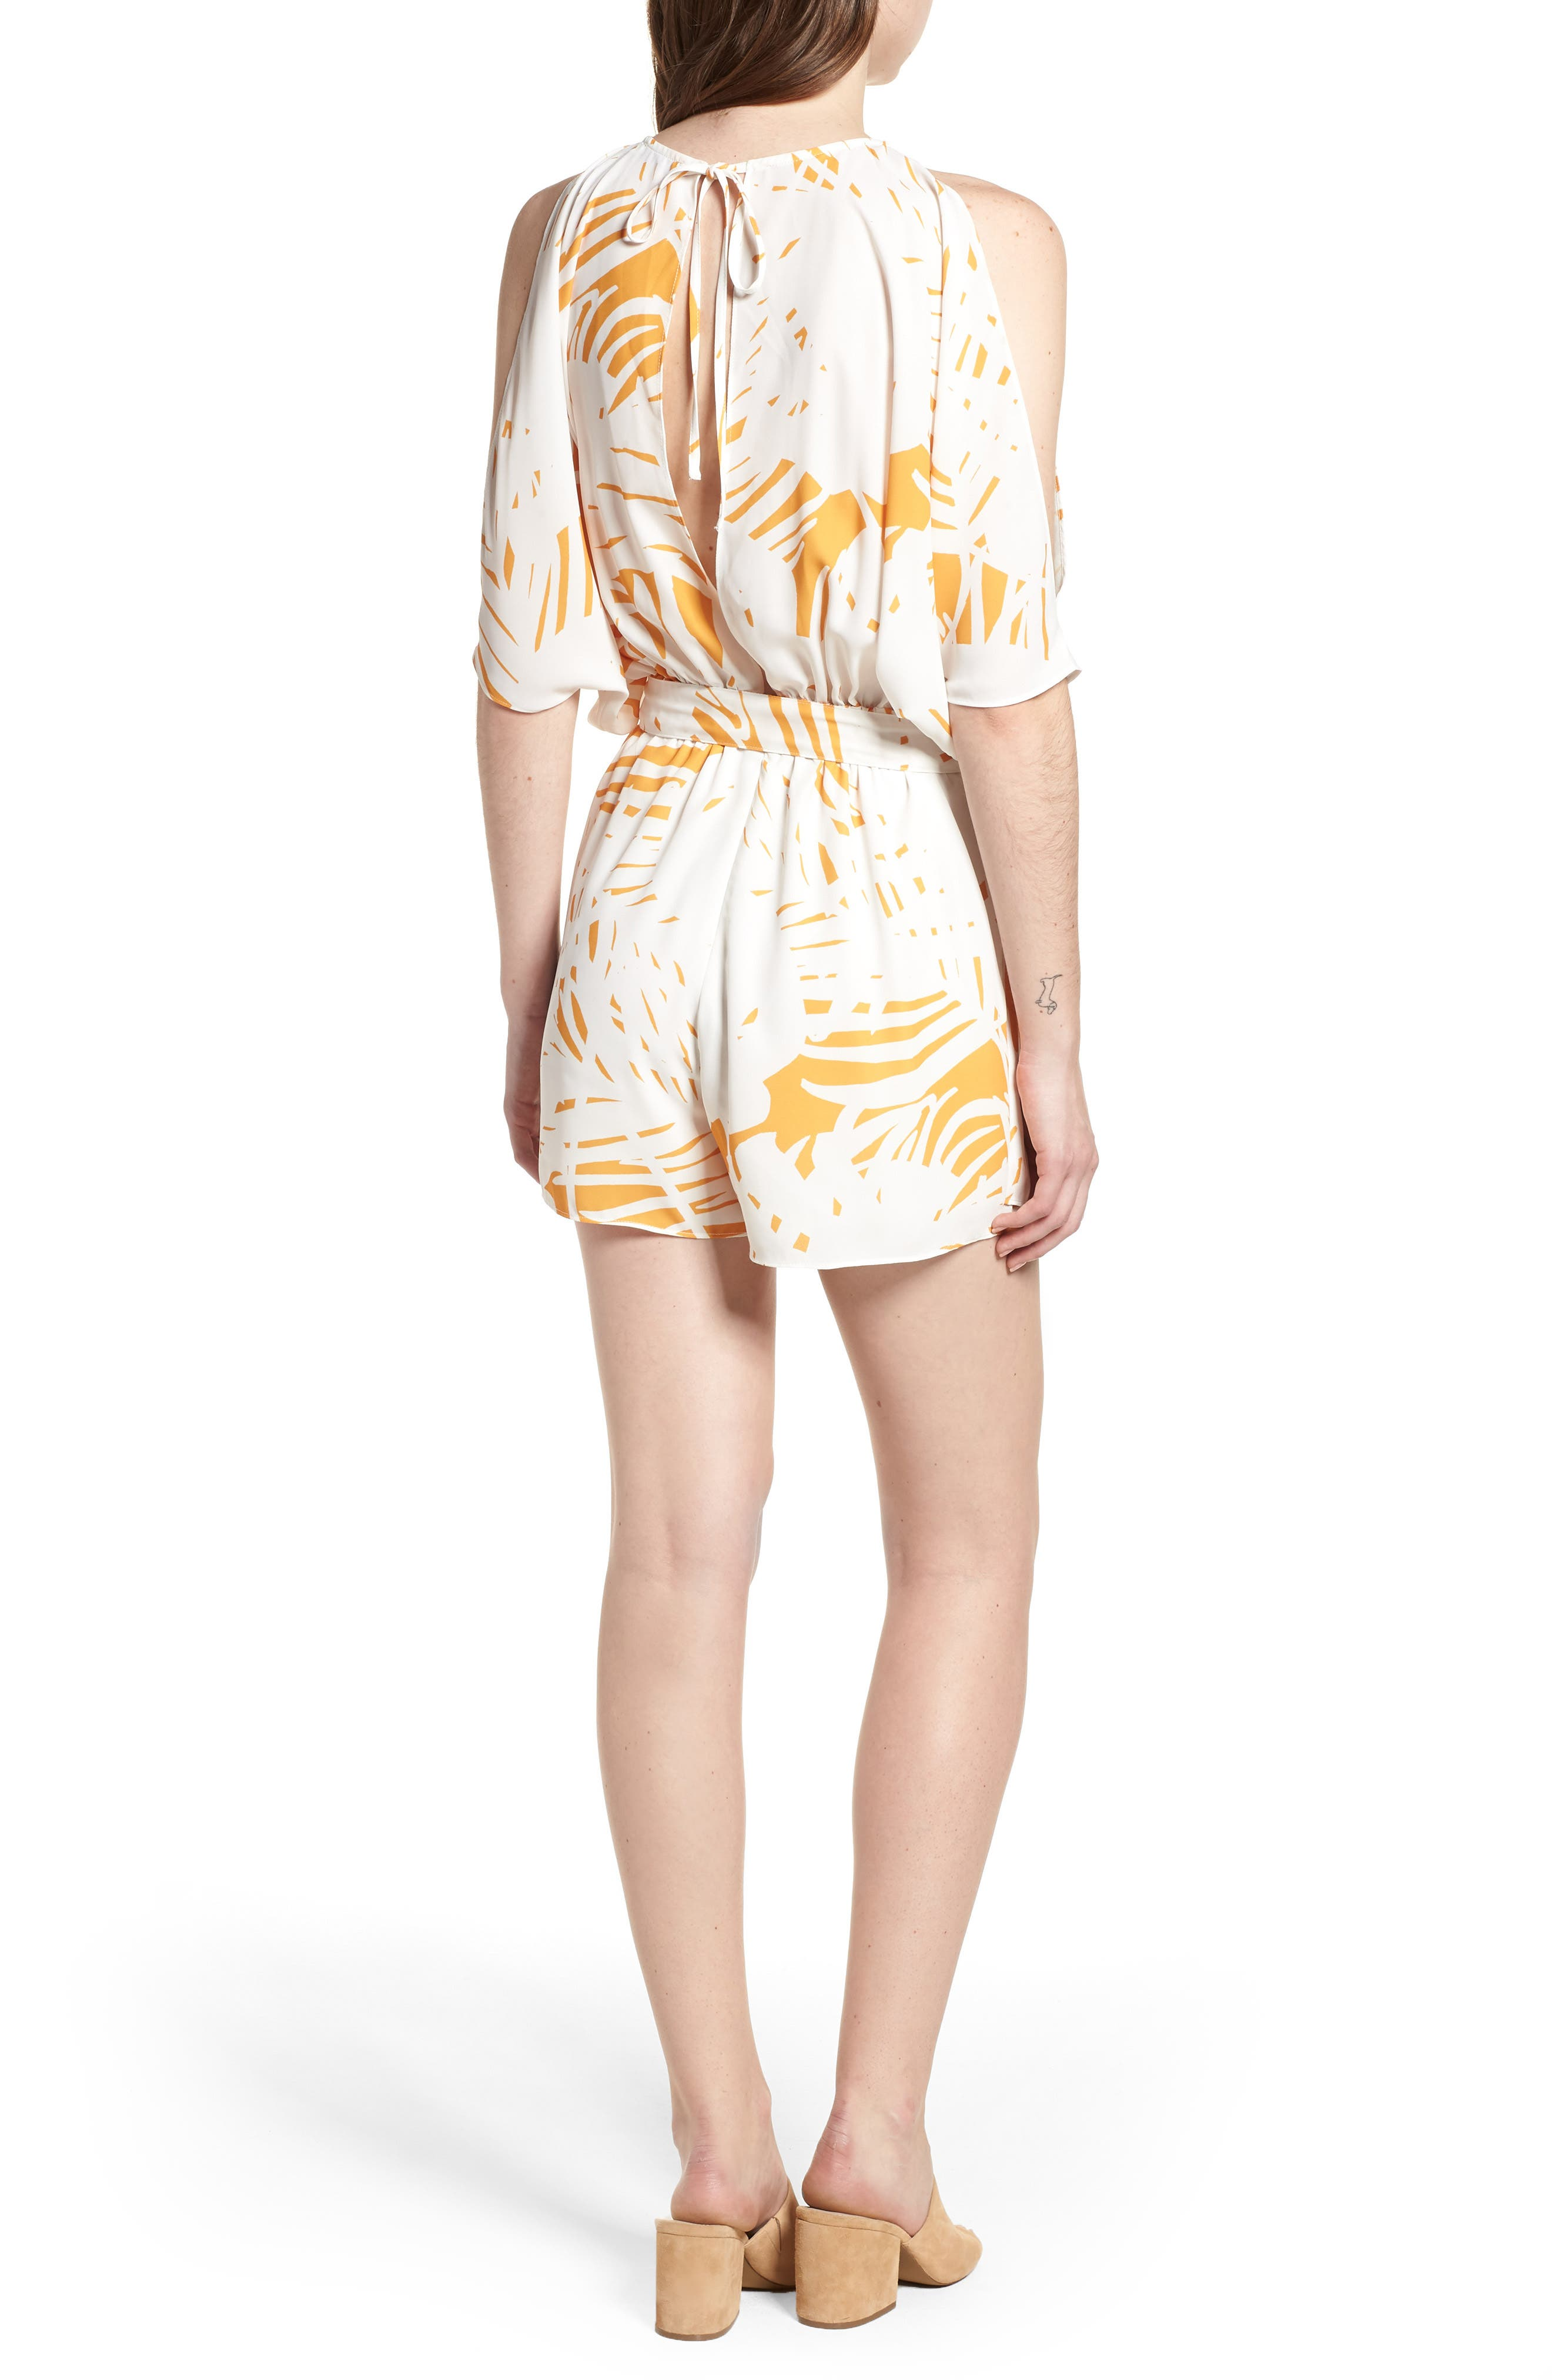 Bishop + Young Jet Set Cold Shoulder Romper,                             Alternate thumbnail 2, color,                             Riviera Print